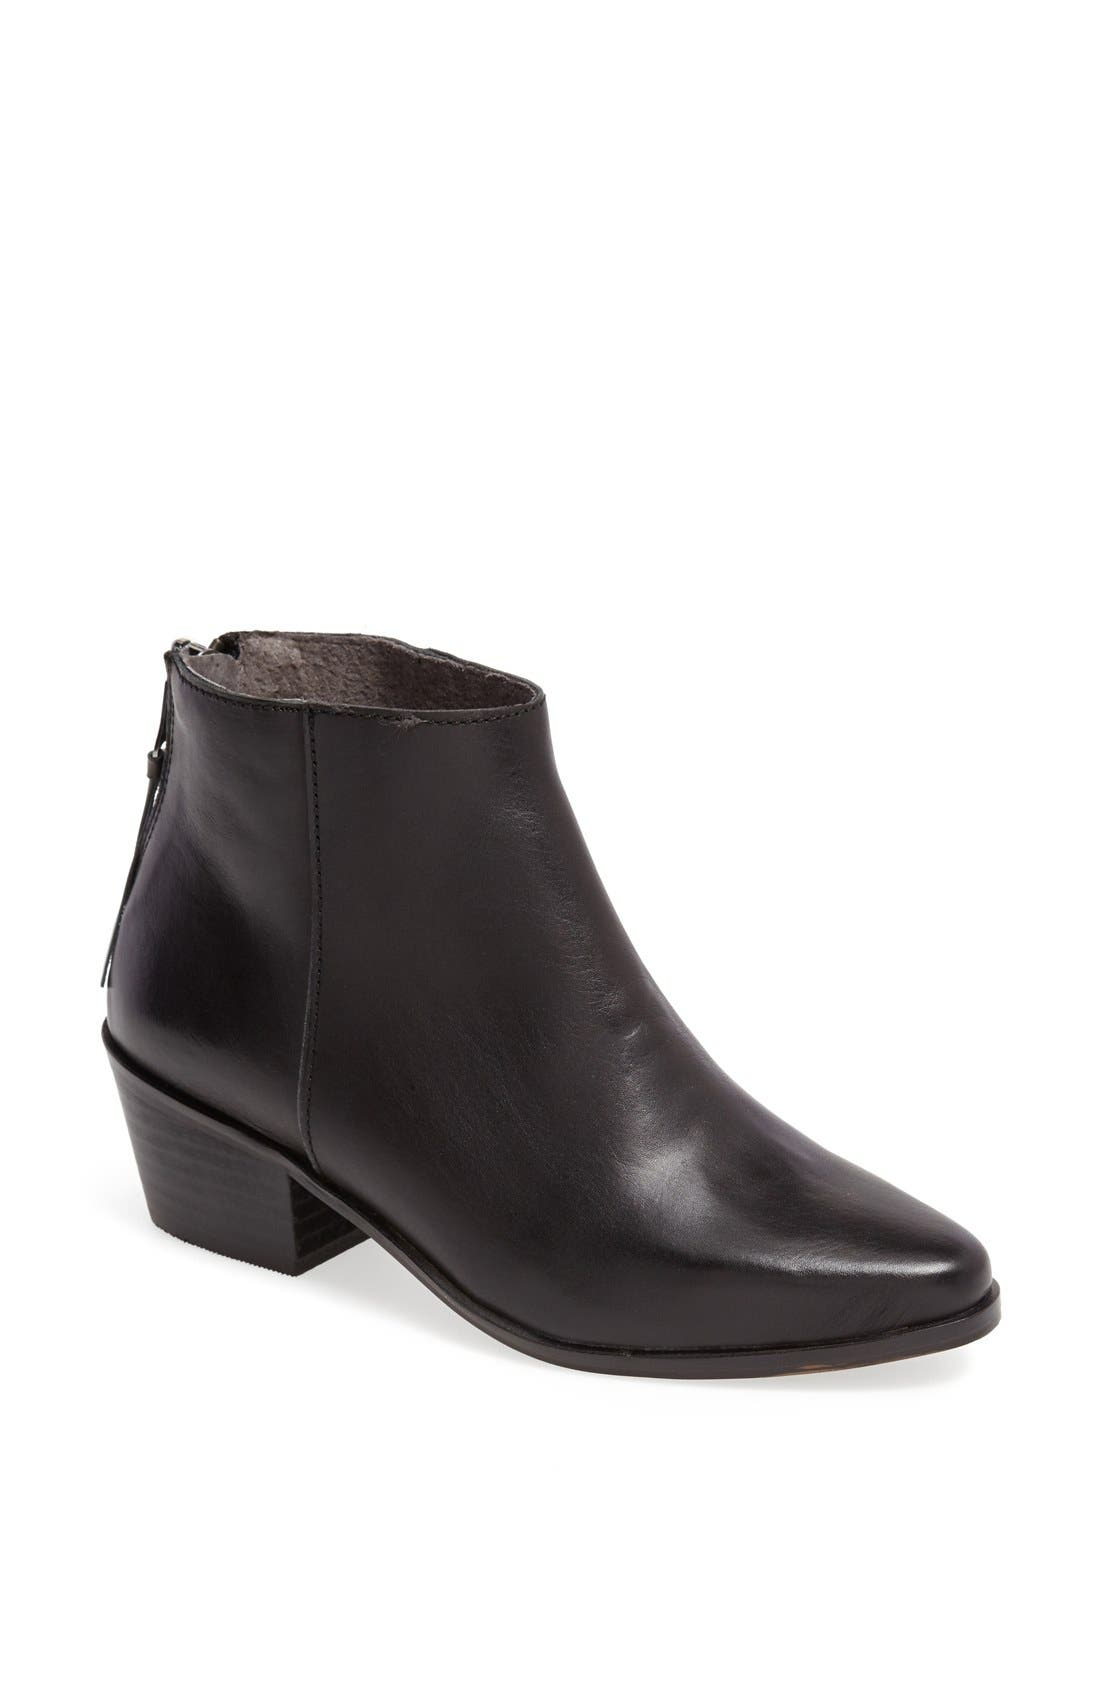 Alternate Image 1 Selected - Topshop 'Archy' Back Zip Bootie